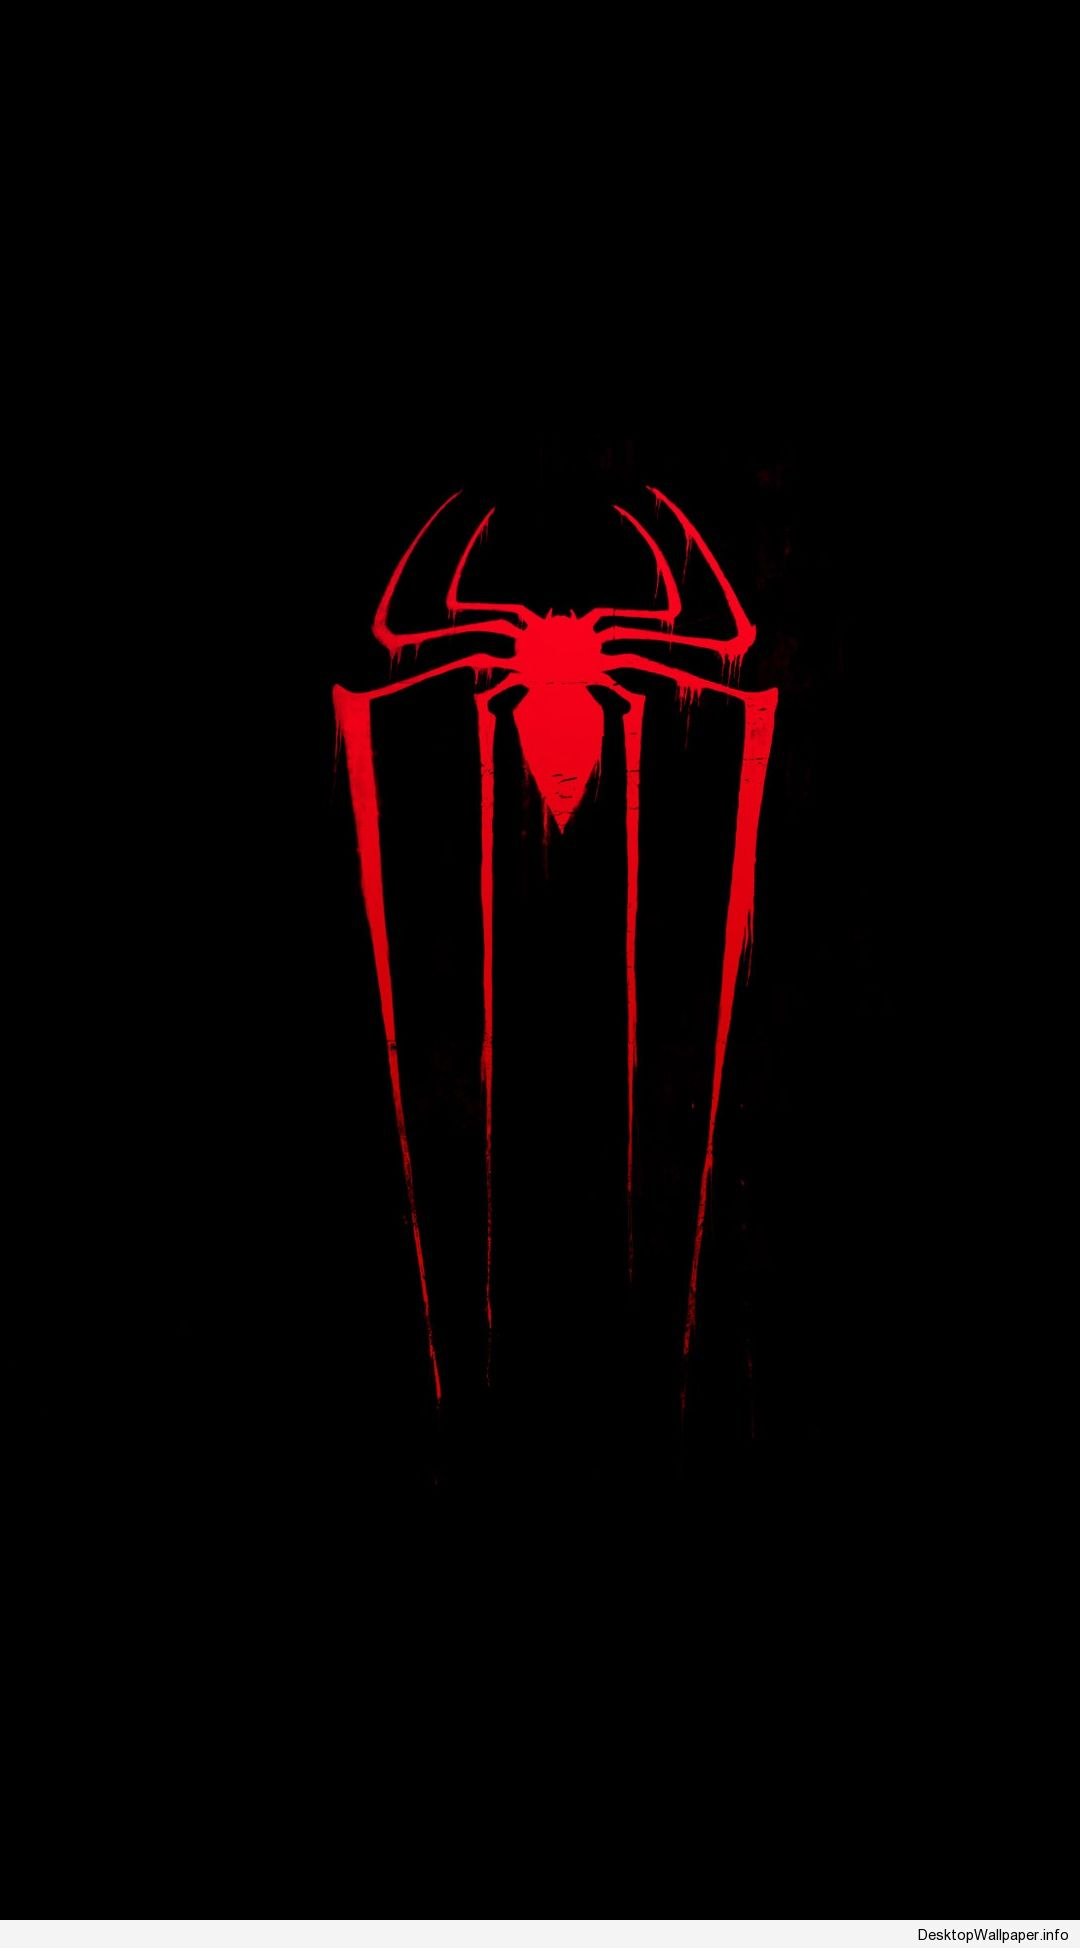 cool spiderman logo wallpapers wwwpixsharkcom images